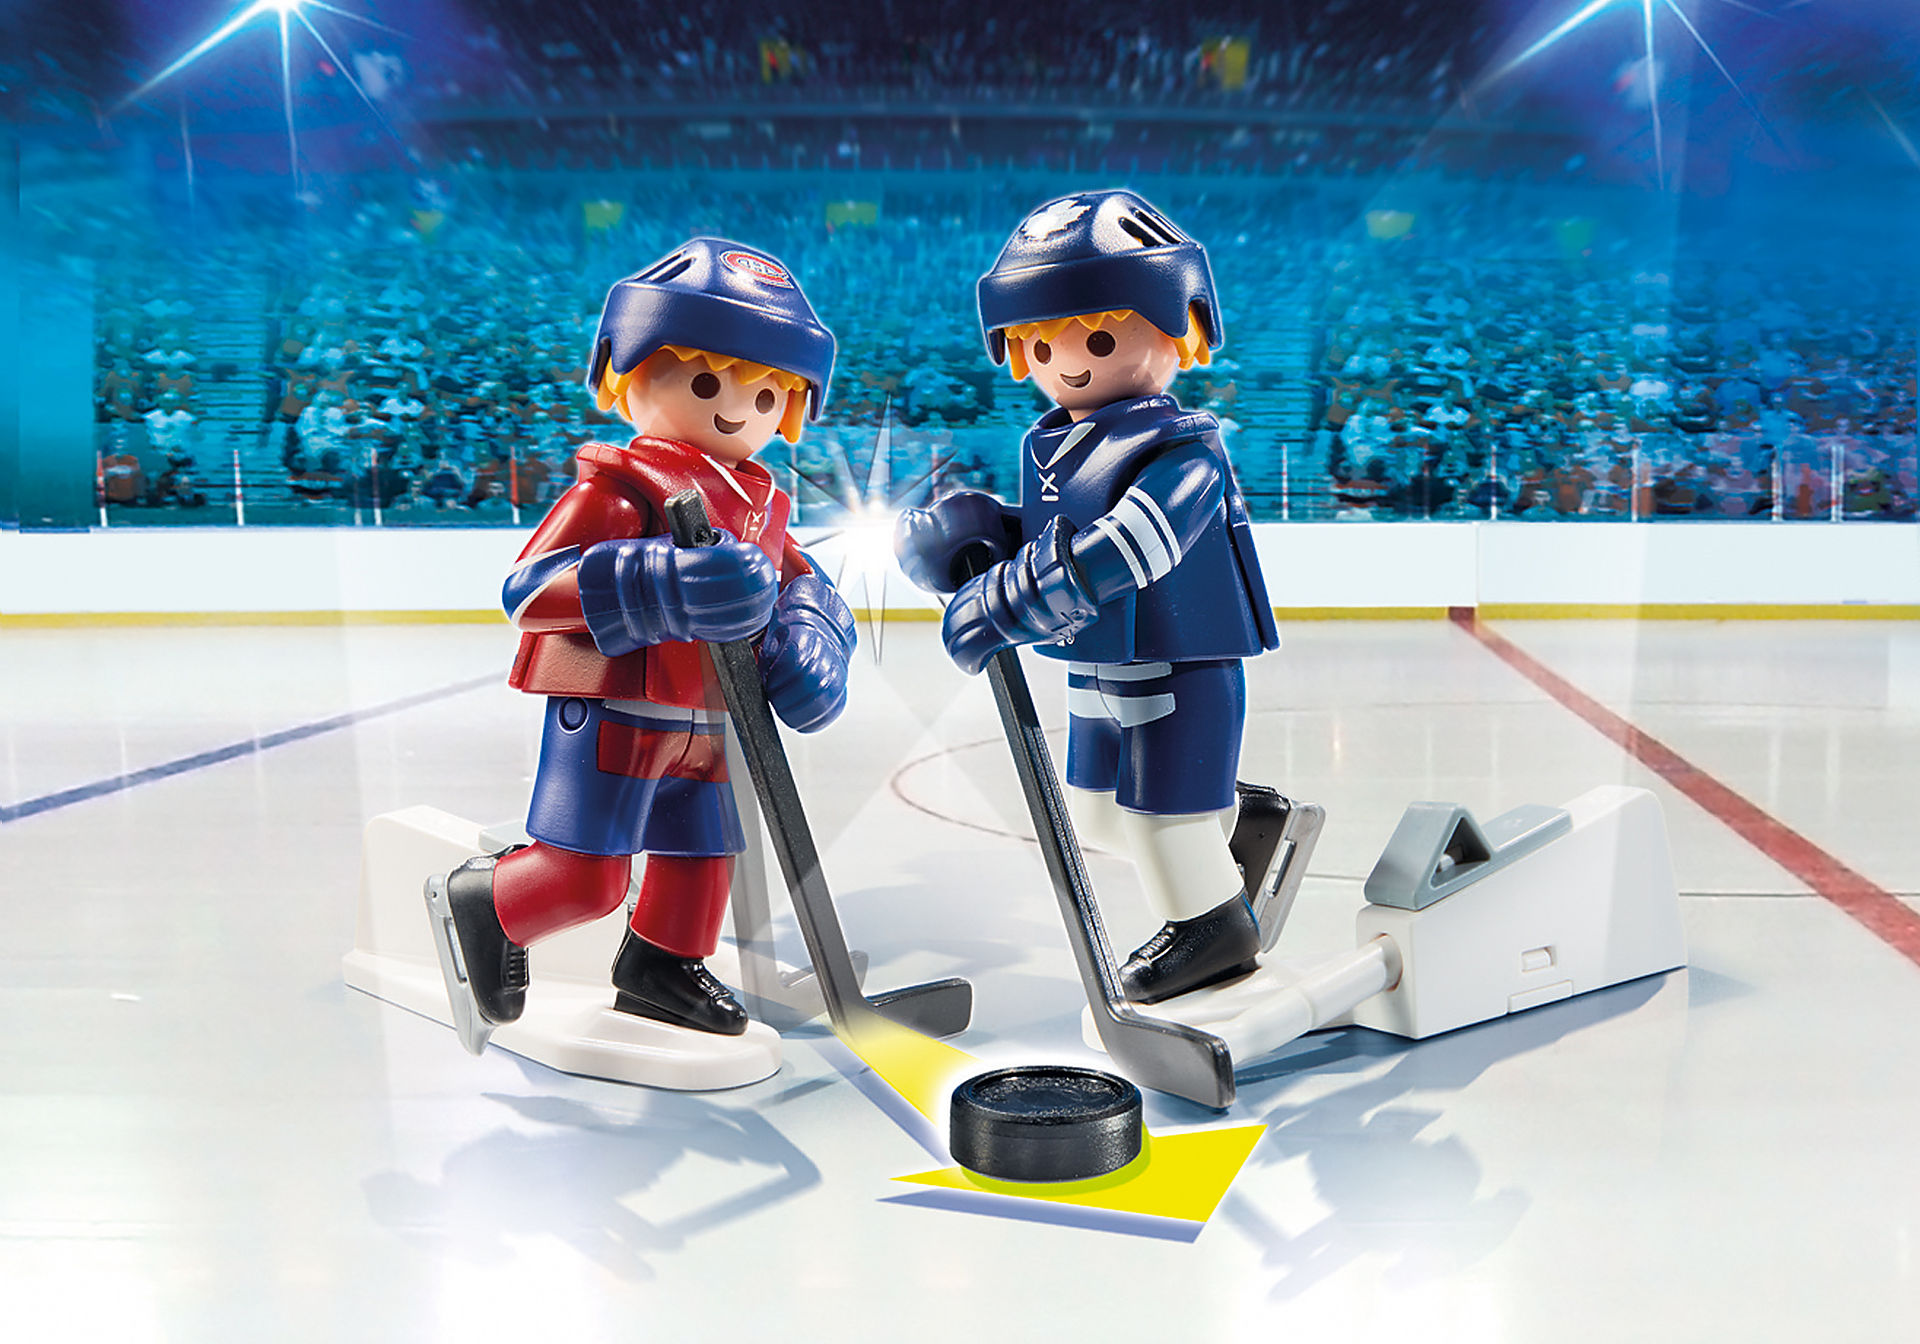 9013 NHL™ Montreal Canadiens™ vs Blister Toronto Maple Leafs™ zoom image1